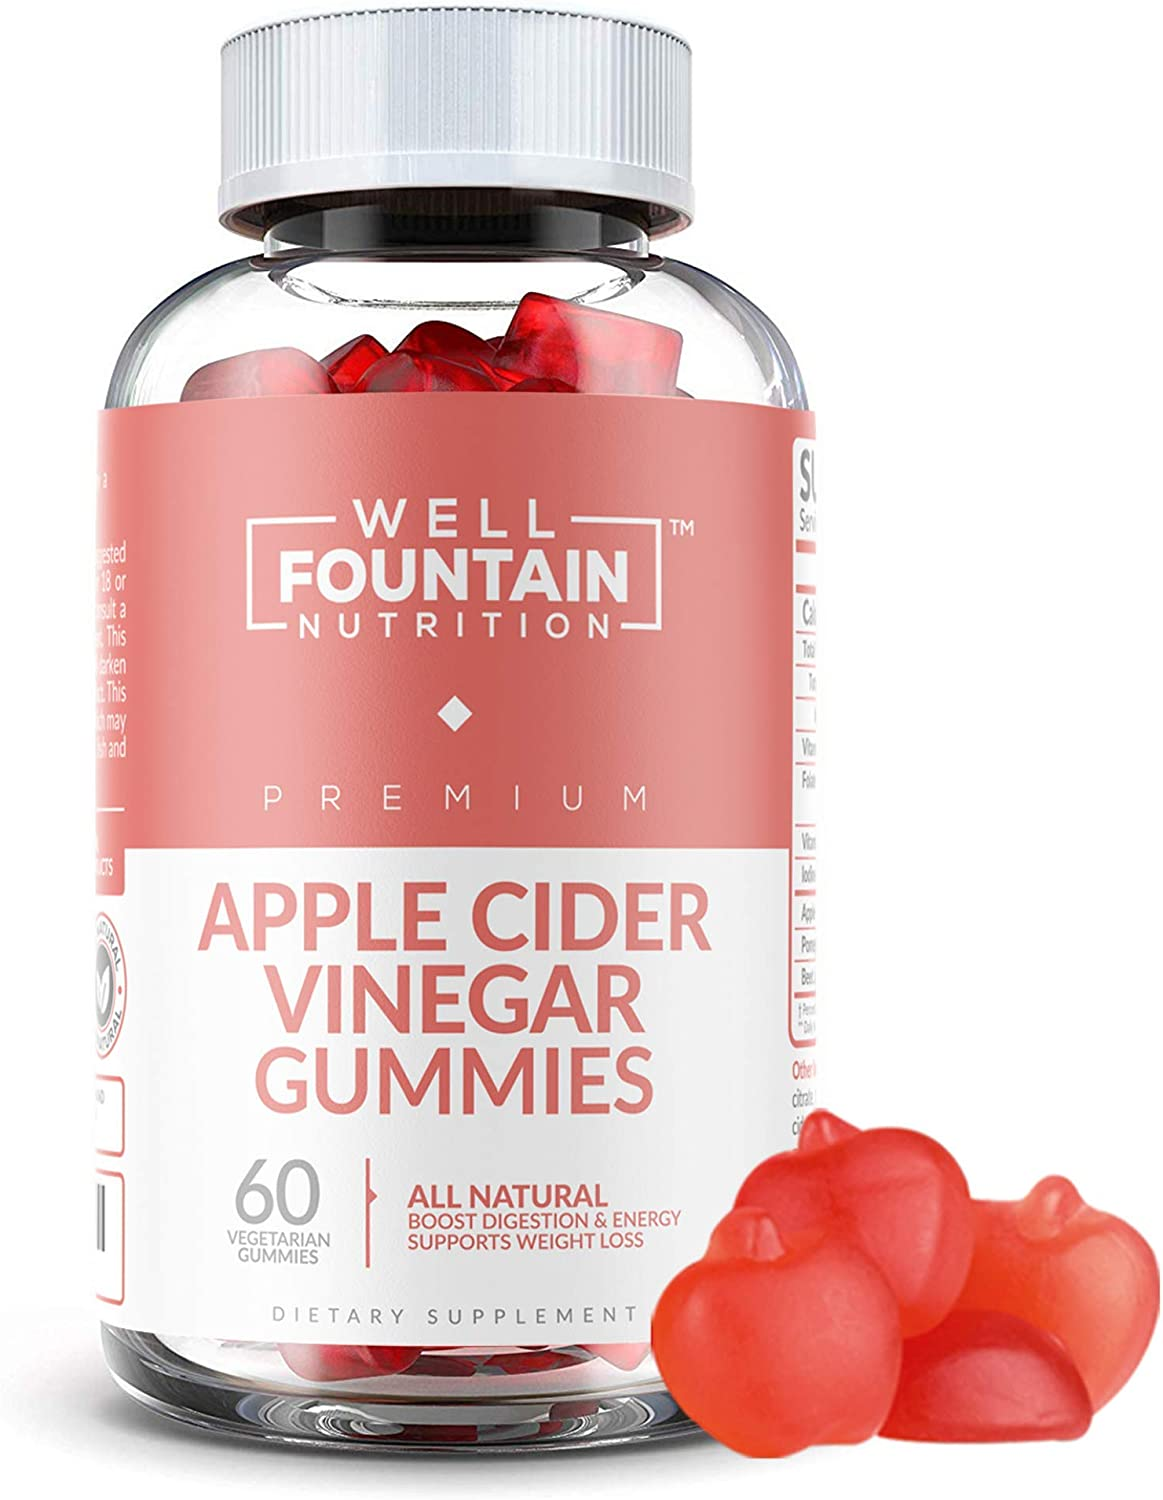 Apple Cider Vinegar Gummies - Extra Strength Organic ACV with The Mother, Vitamin B12 & B6 for Energy & Mood Boost - Vegan ACV Gummies Supports Detox, Cleanse, Acid Reflux, Weight Control & Immunity